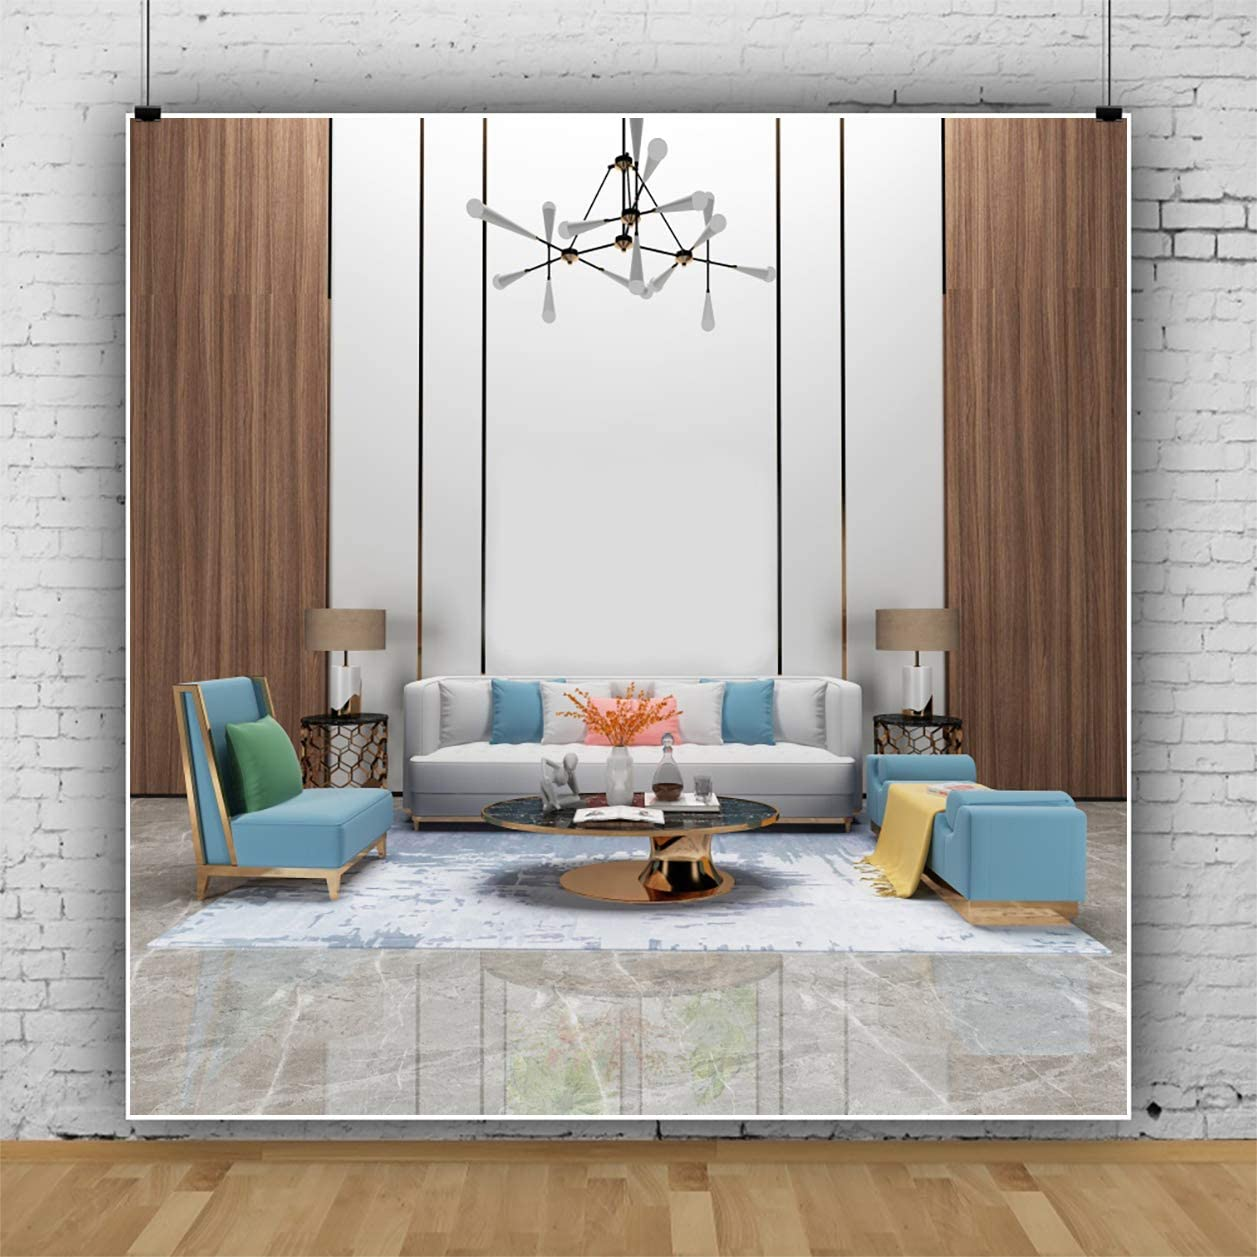 YEELE Fashion Living Room Backdrop 9x9ft Stylish Furnitures Sofa Tea Table Photography Background Modern House and Home Design Cozy Apartment Kids Adult Portrait Photo Studio Props Wallpaper